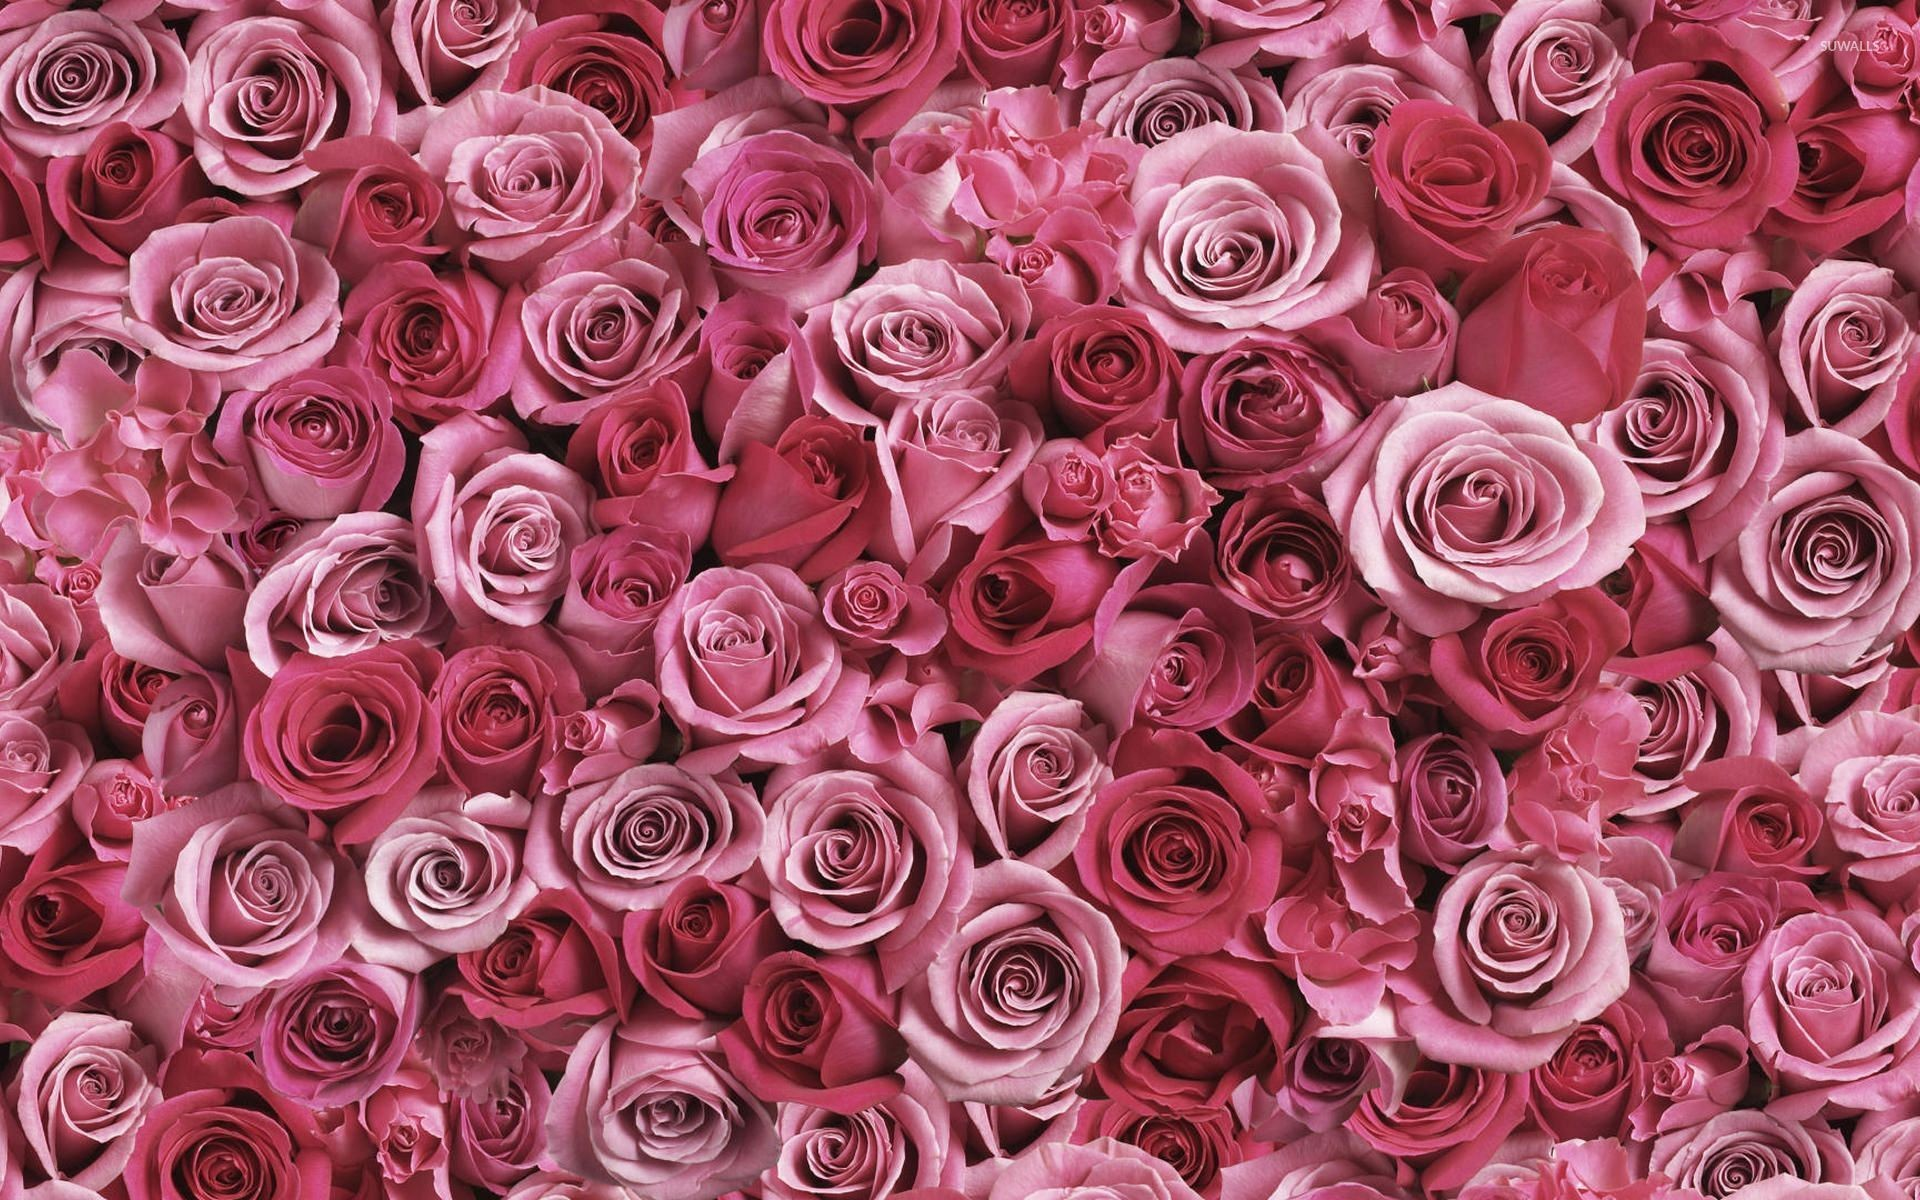 Pink roses wallpapers wallpapertag - Pink rose black background wallpaper ...